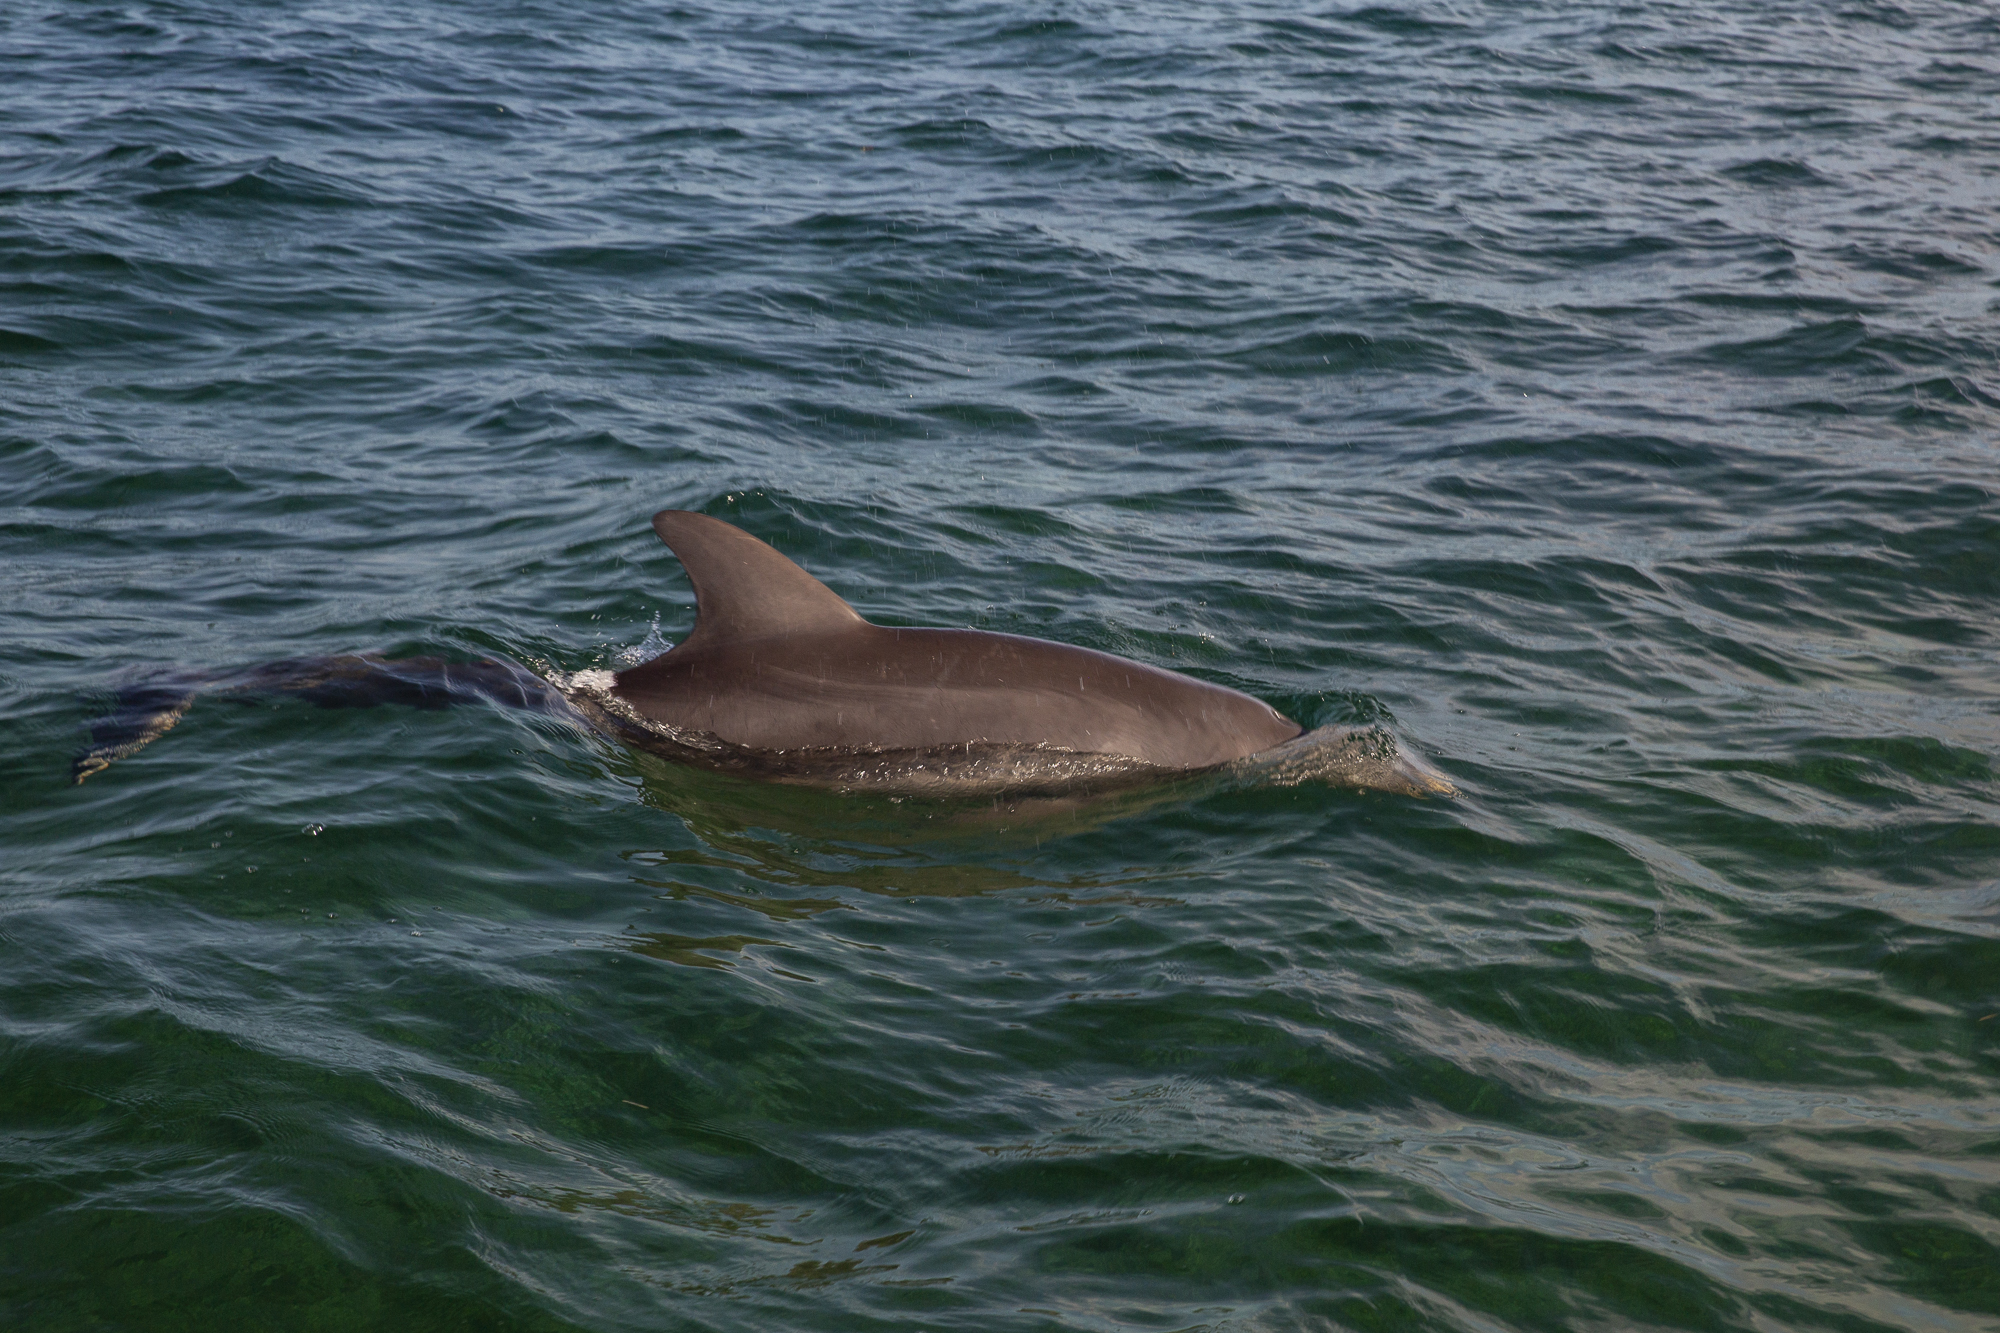 Wild dolphins played with our boat, curious and energetic